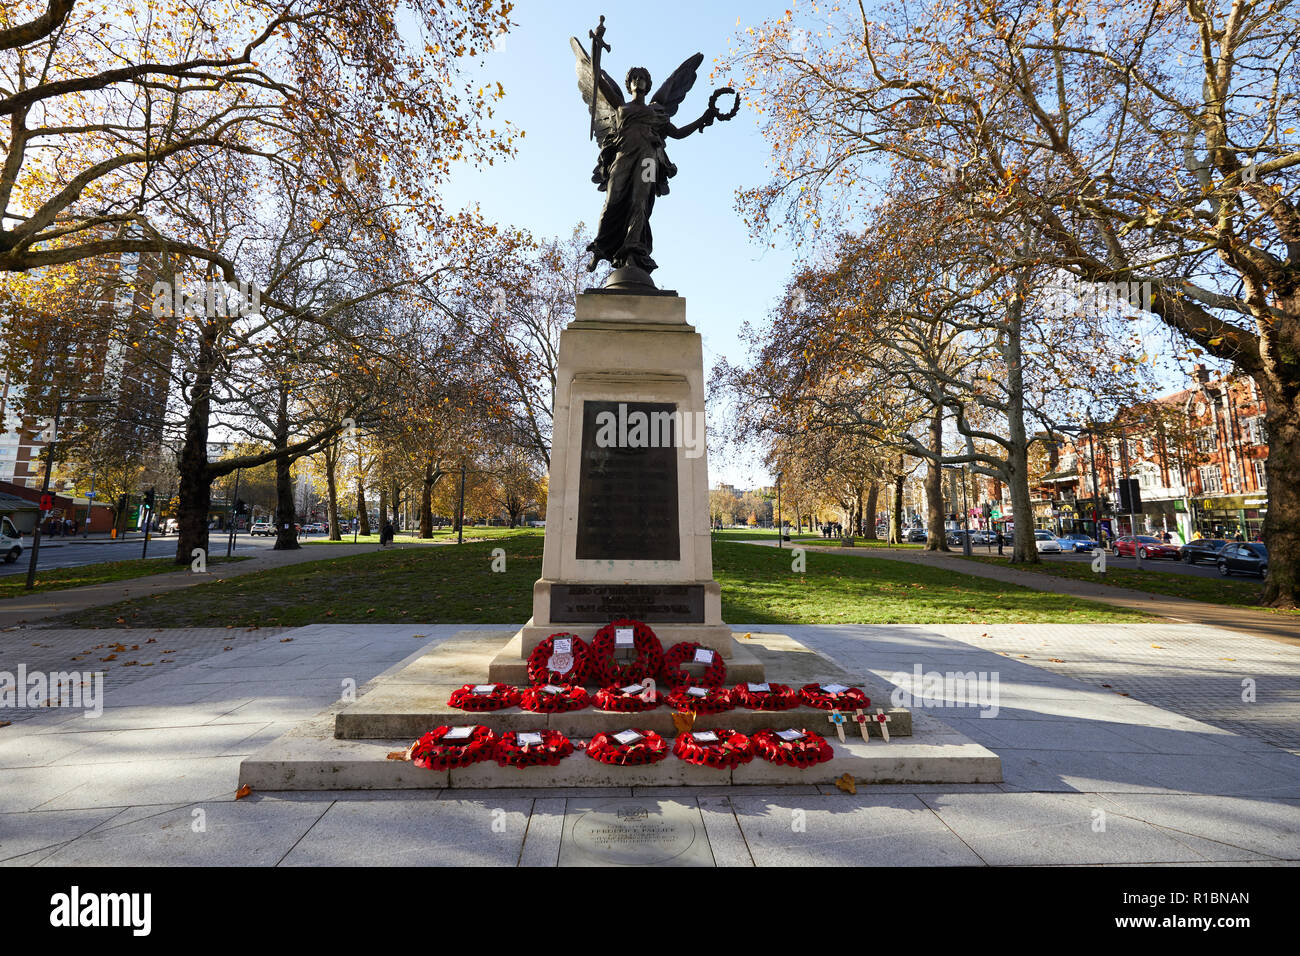 London, UK. - 11 November 2018: Poppy wreaths left at the Hammersmith War Memorial on Shepherd's Bush Green on the 100th anniversary since the end of World War One. Credit: Kevin J. Frost/Alamy Live News - Stock Image